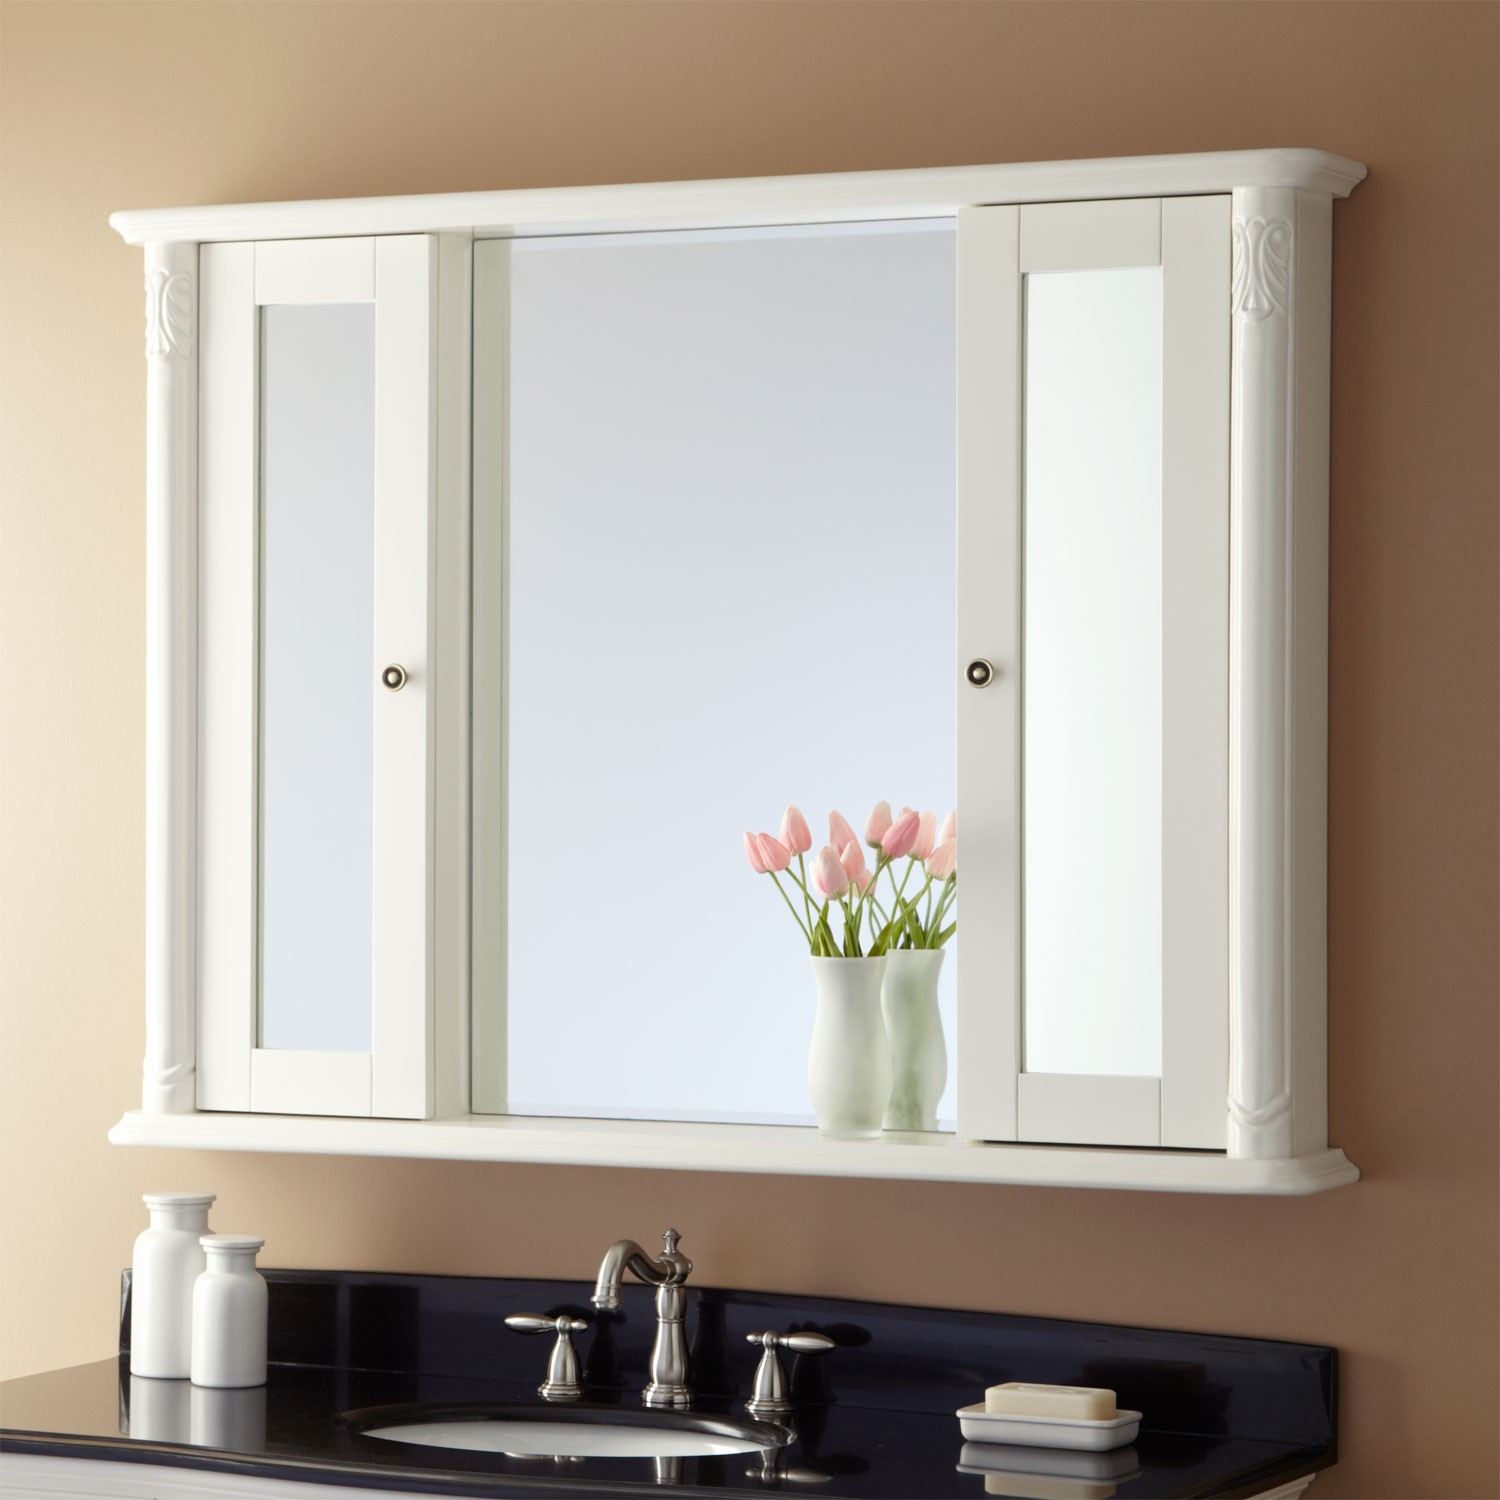 Bathroom The Decoration Of The Bathroom With Lowes Medicine - Black mirrored bathroom cabinet for bathroom decor ideas